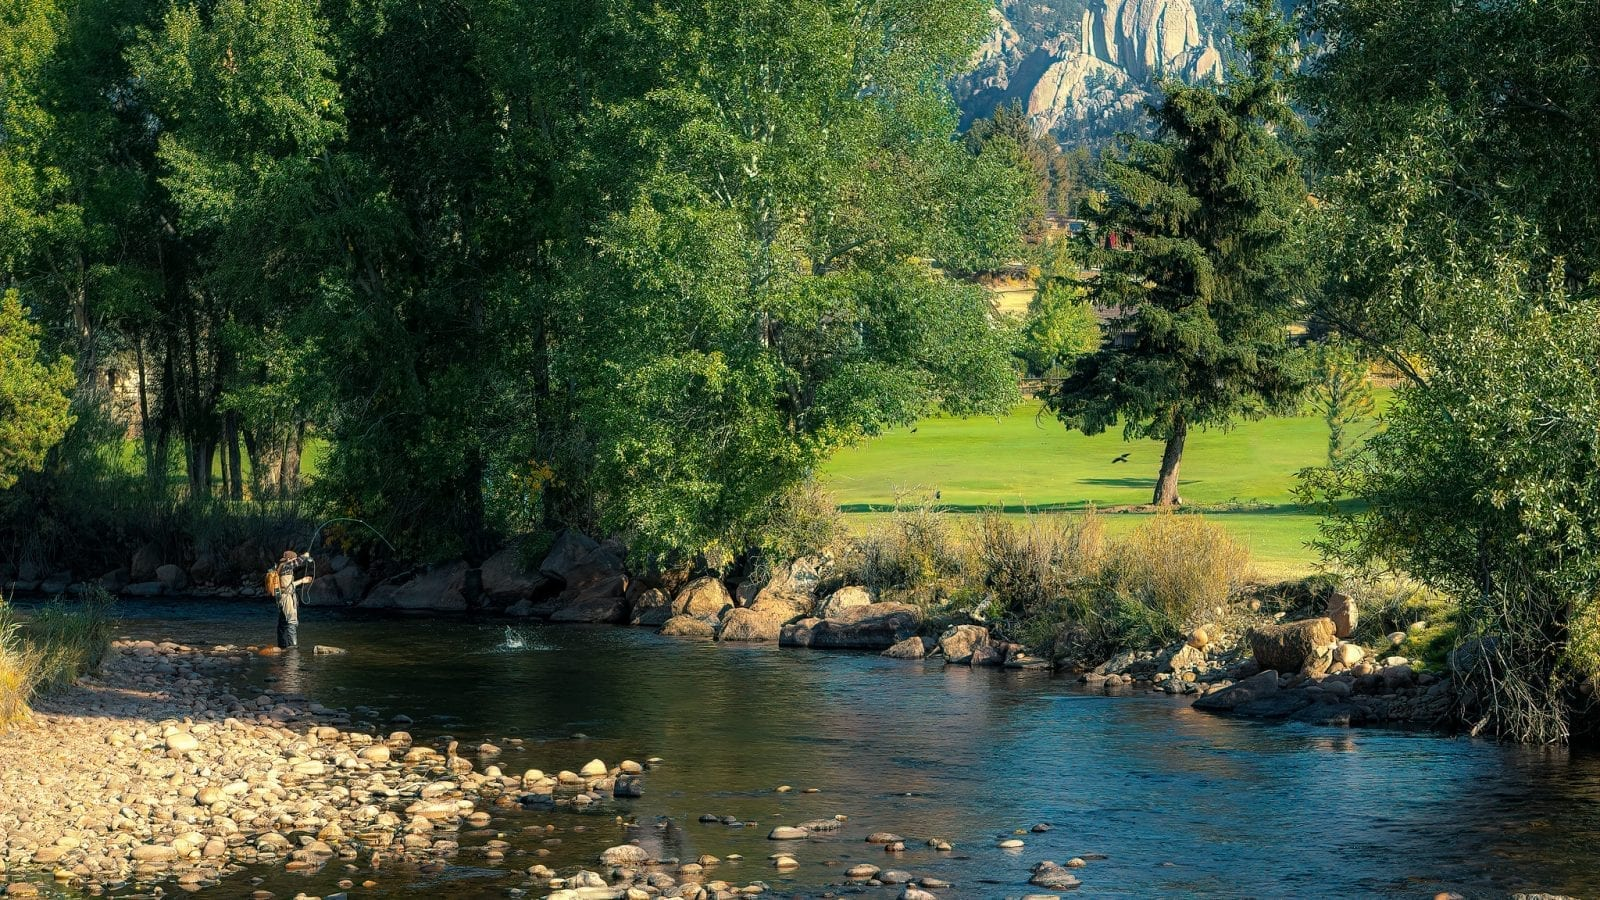 Image of a man fly fishing on the Big Thompson River in Colorado